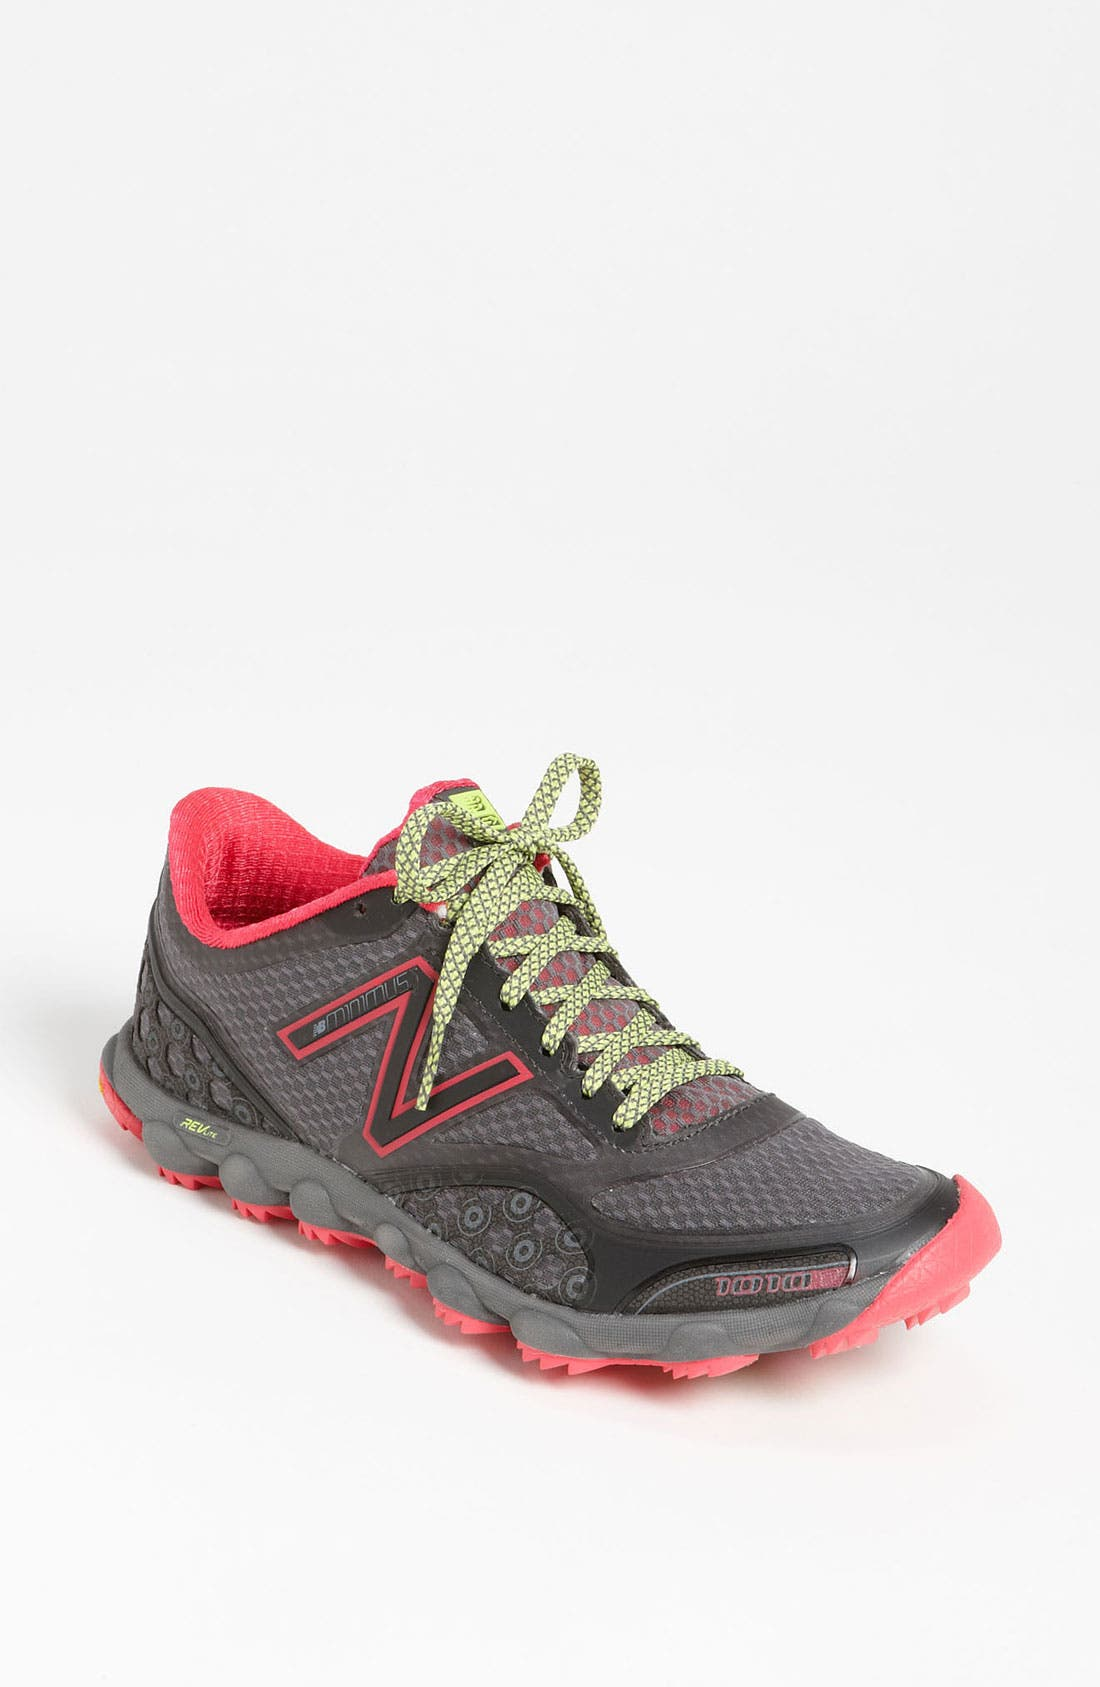 Alternate Image 1 Selected - New Balance '1010 Minimus Trail' Training Shoe (Women) (Regular Retail Price: $109.95)